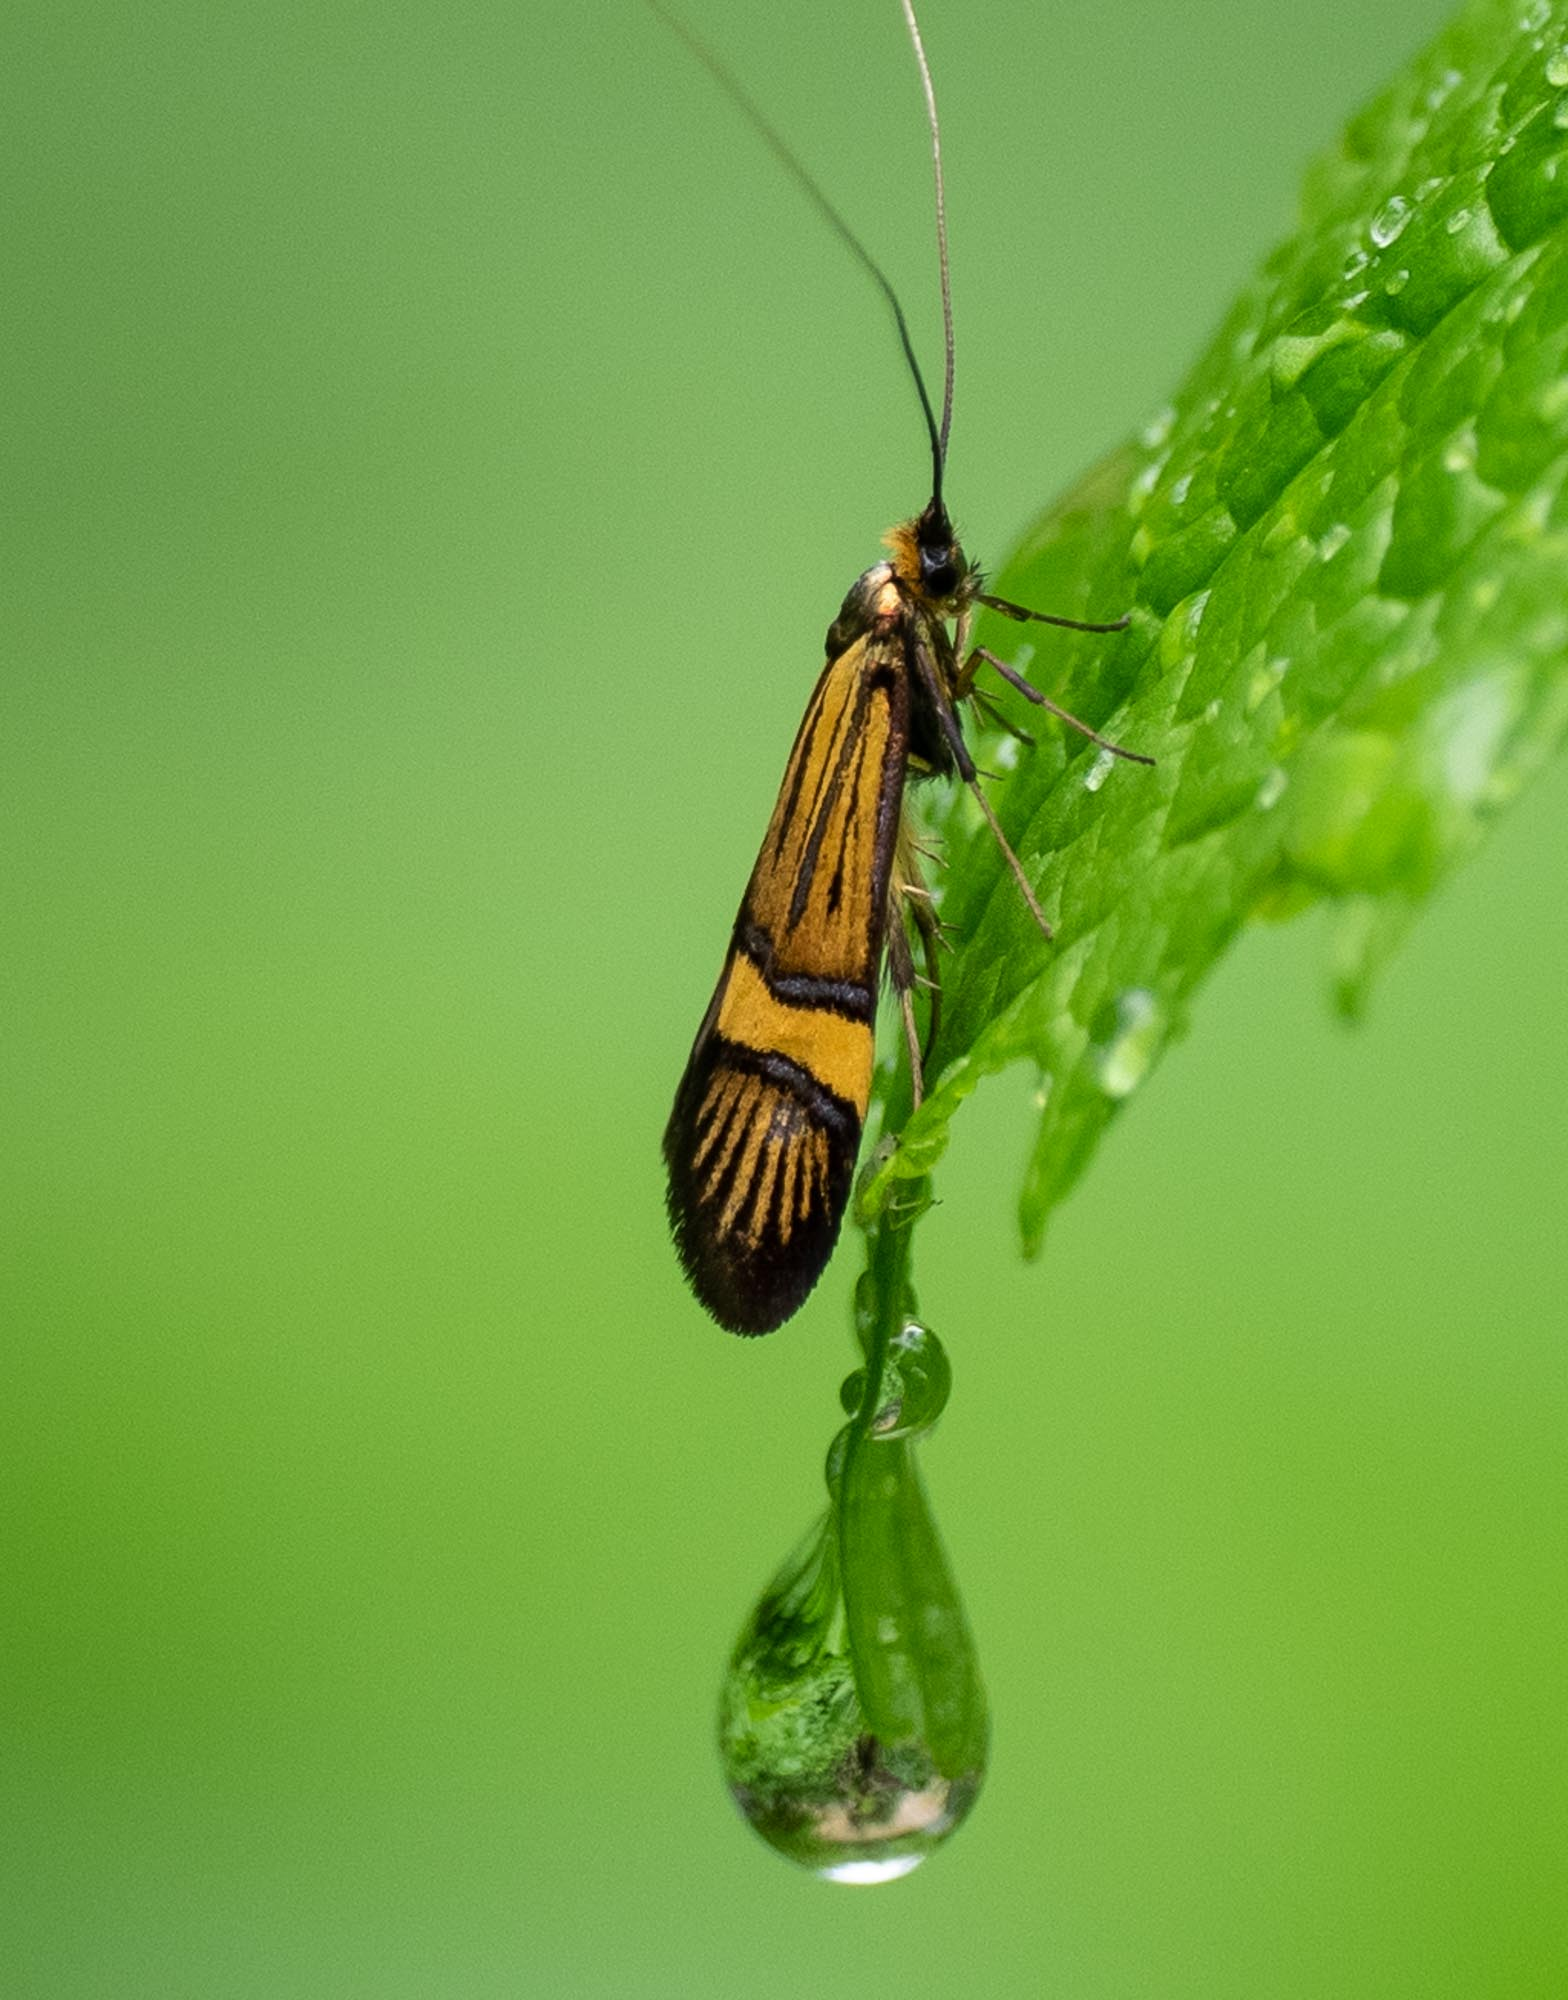 This Fairy Moth is closely related to an Australian native species (Nemophora)